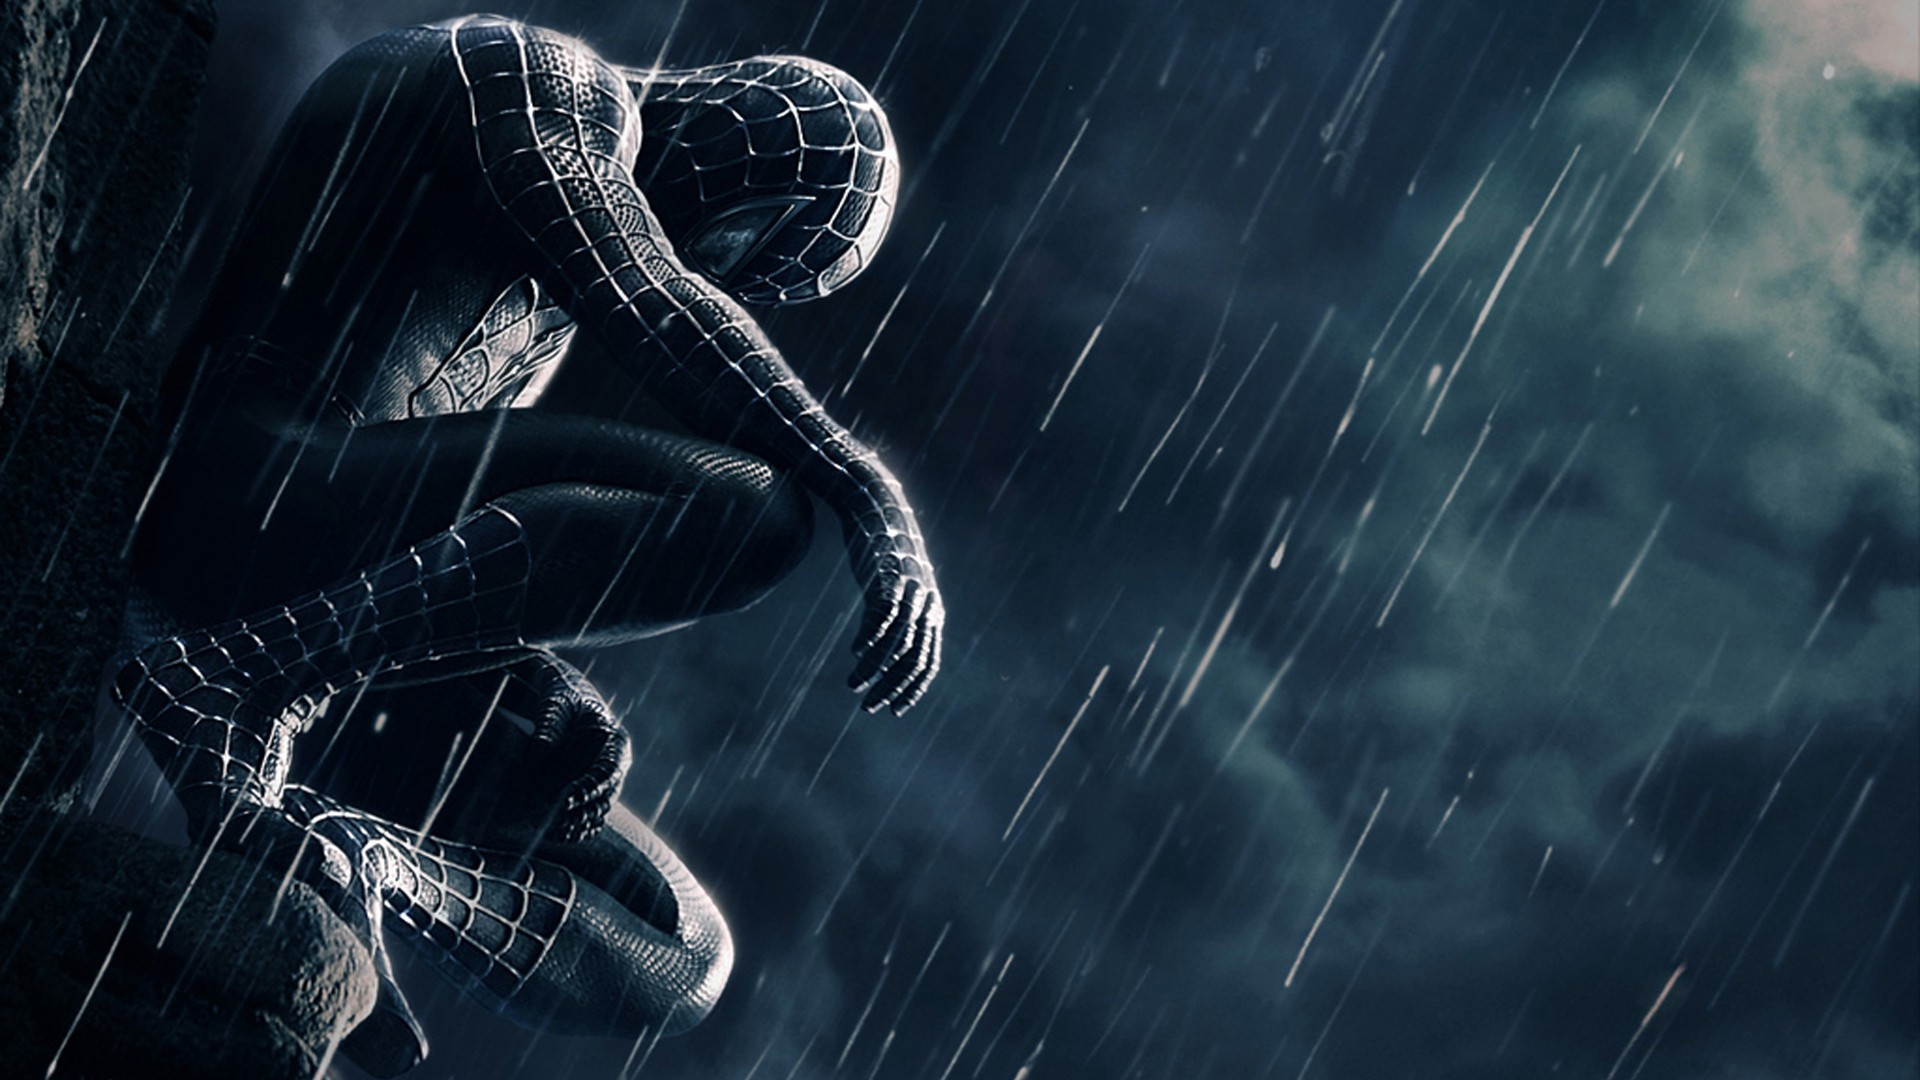 Black Spiderman S Wallpaper Wide Is Cool Wallpapers